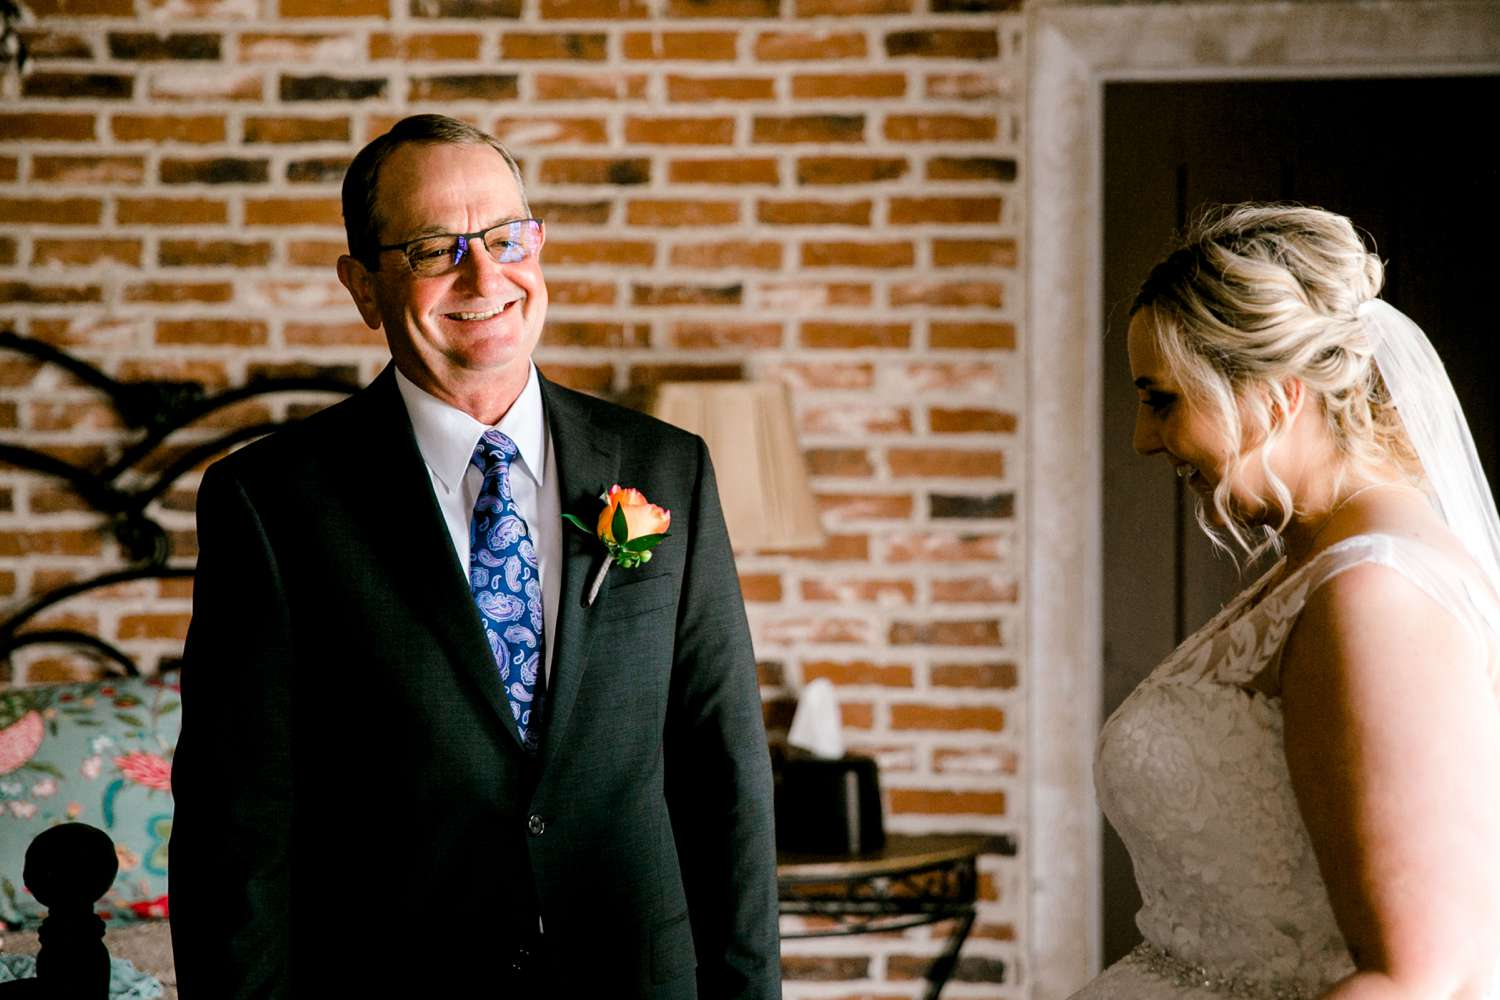 TIMMI+JORDAN_IRVINE_EBERLEY_BROOKS_EVENTS_ALLEEJ_WEDDINGS_0012.jpg